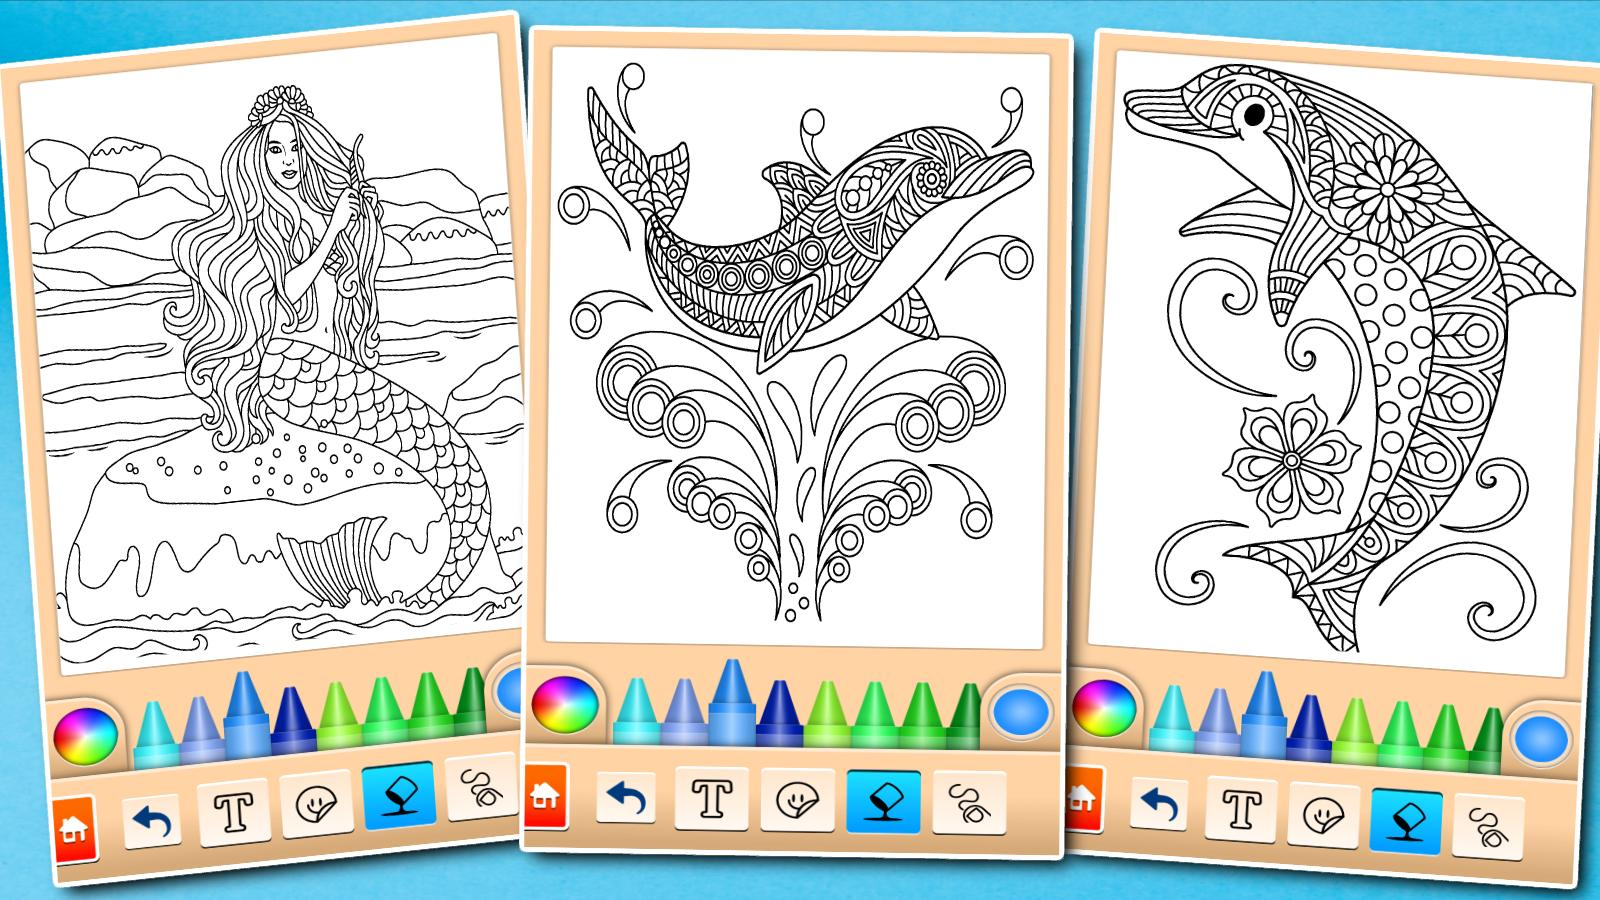 Dolphin and fish coloring book poster